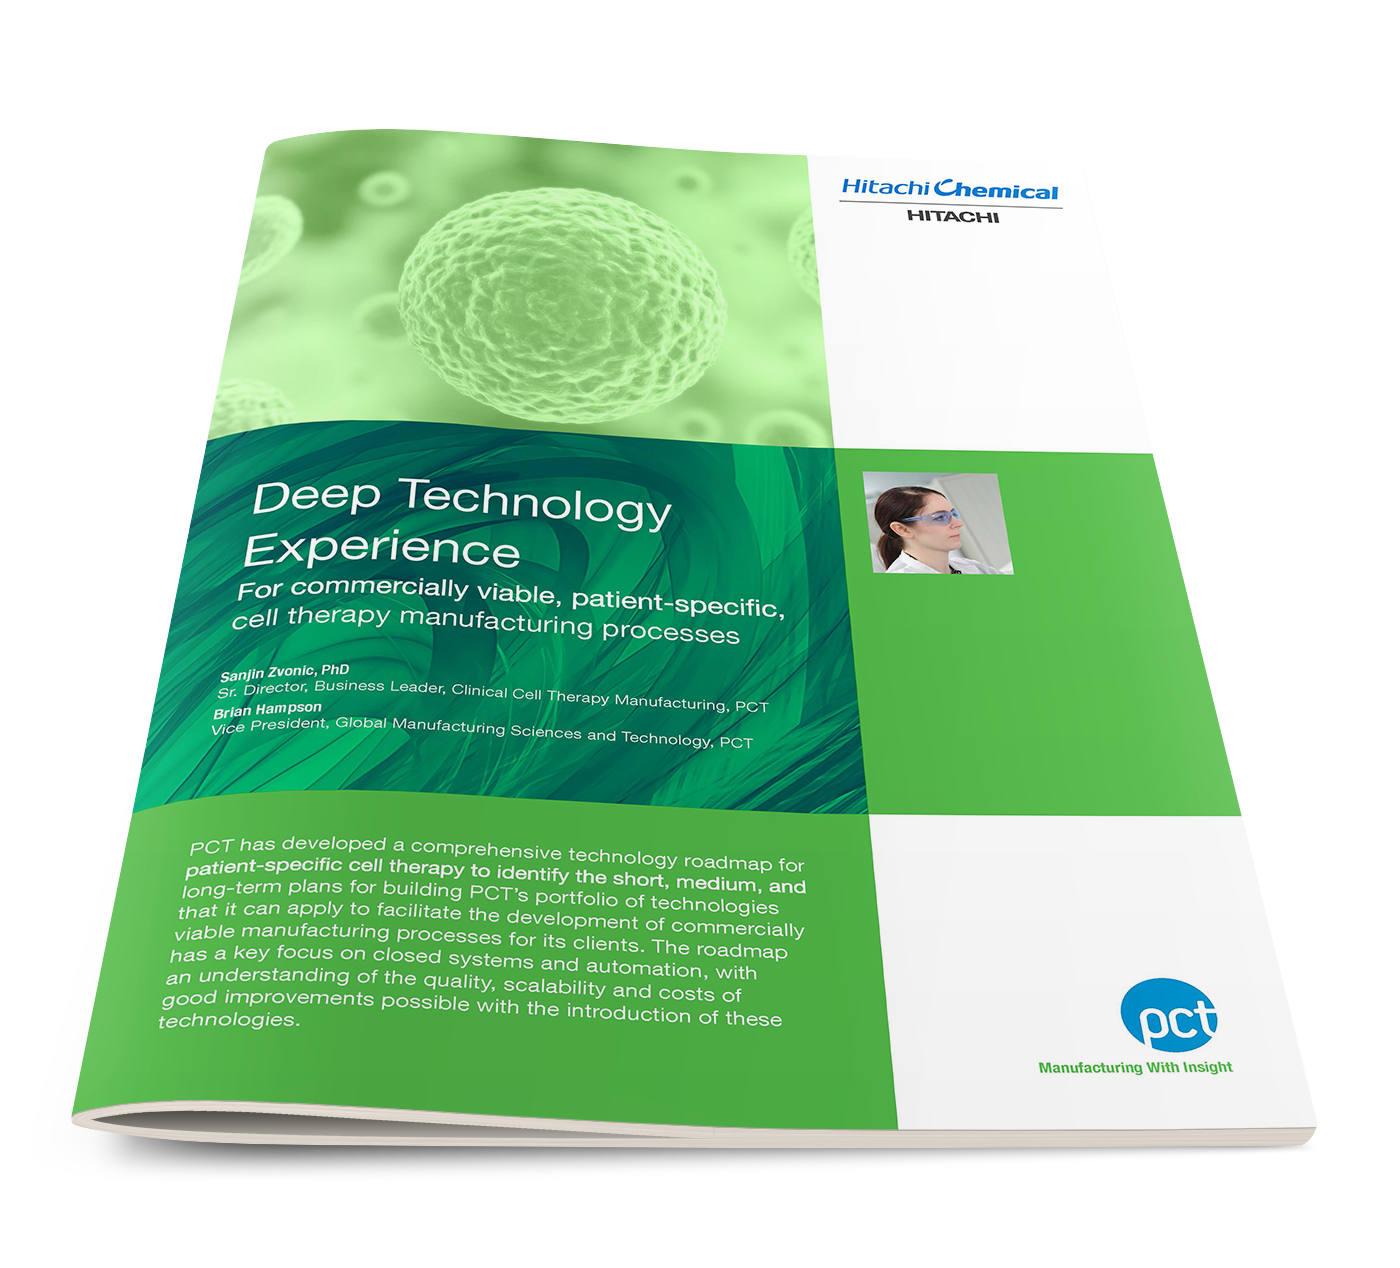 Technology Roadmaps for Cell Therapy